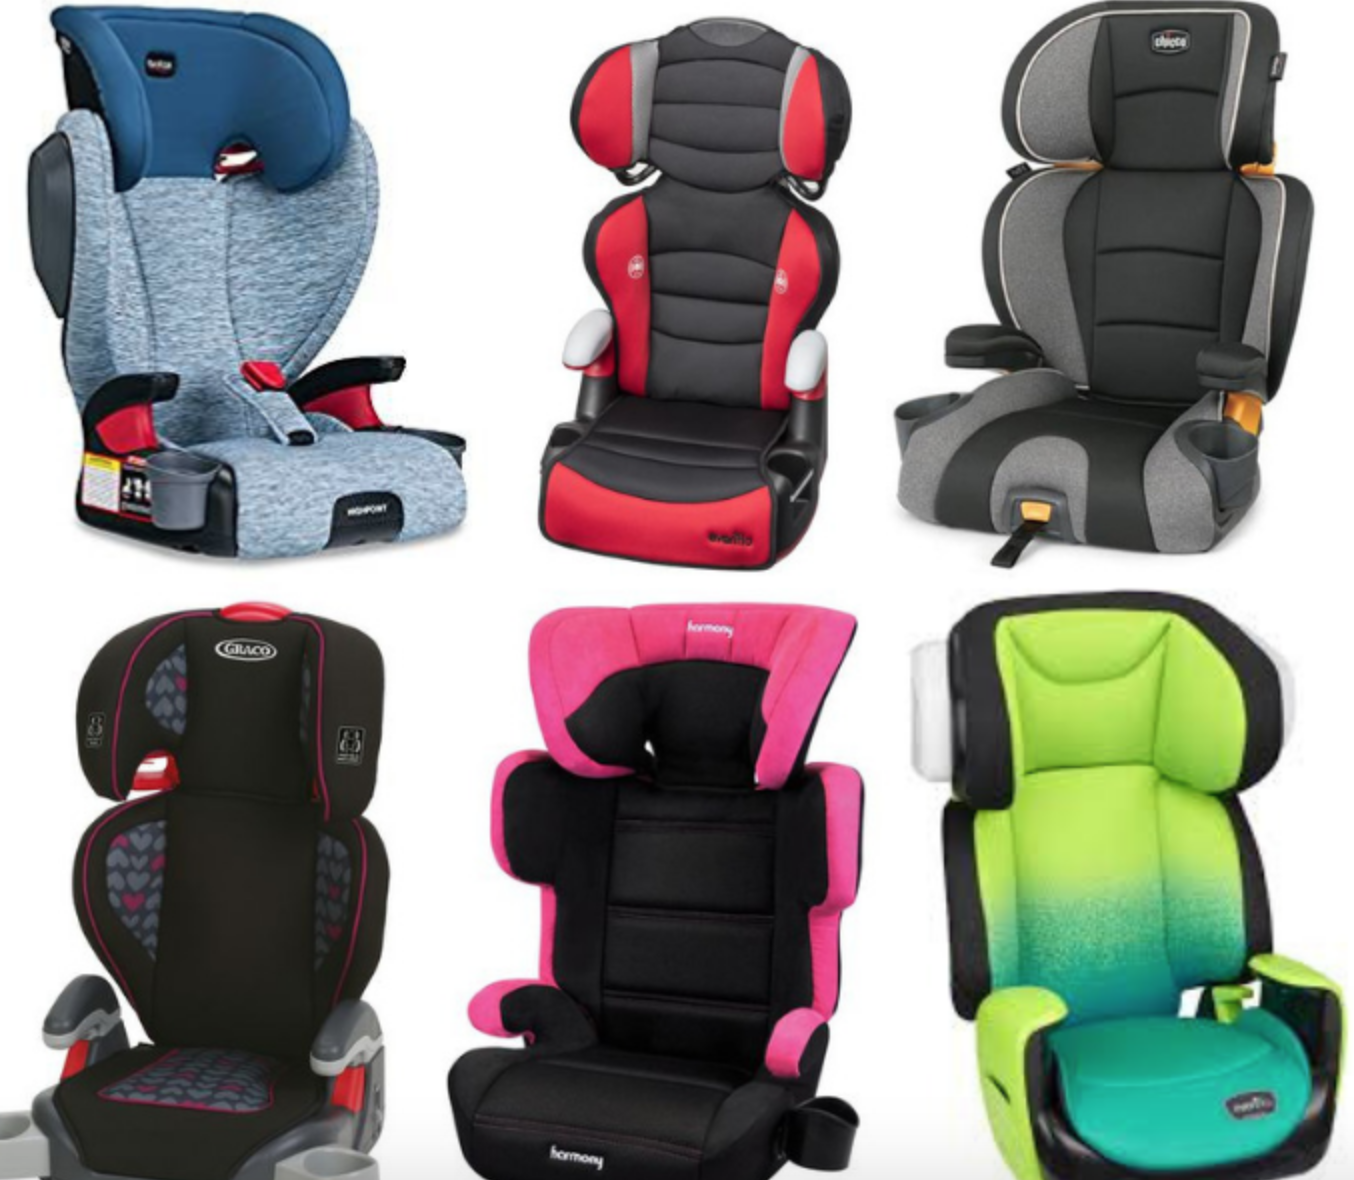 best booster chair for babies india - 2020 Toddler Booster Chairs